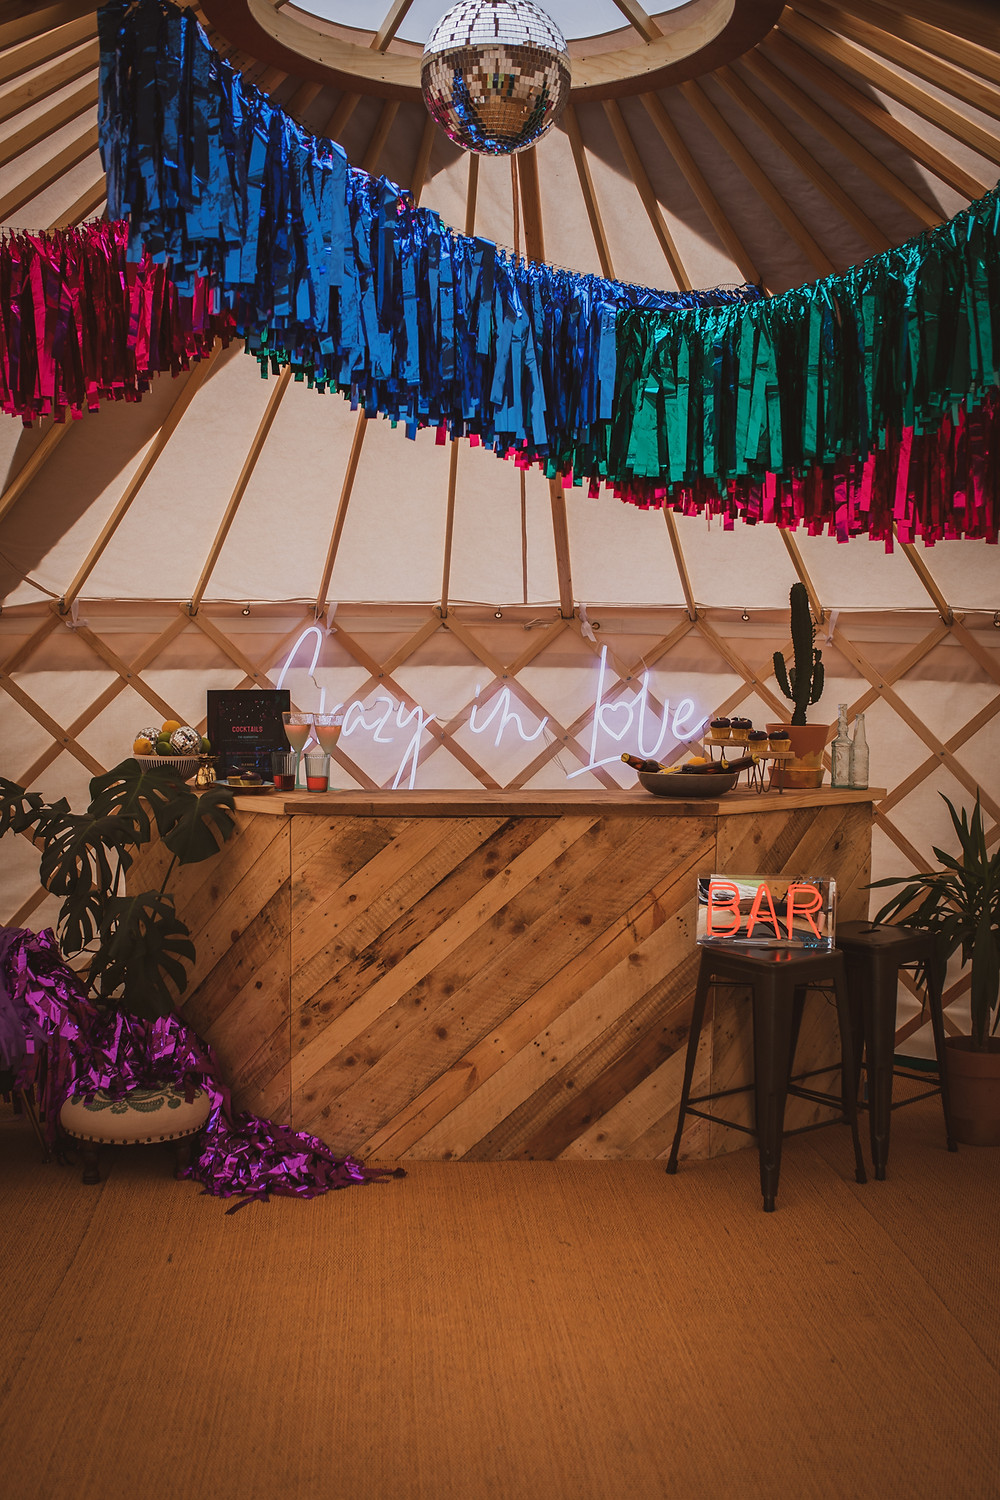 Streamers and disco ball in yurt with yurt bar